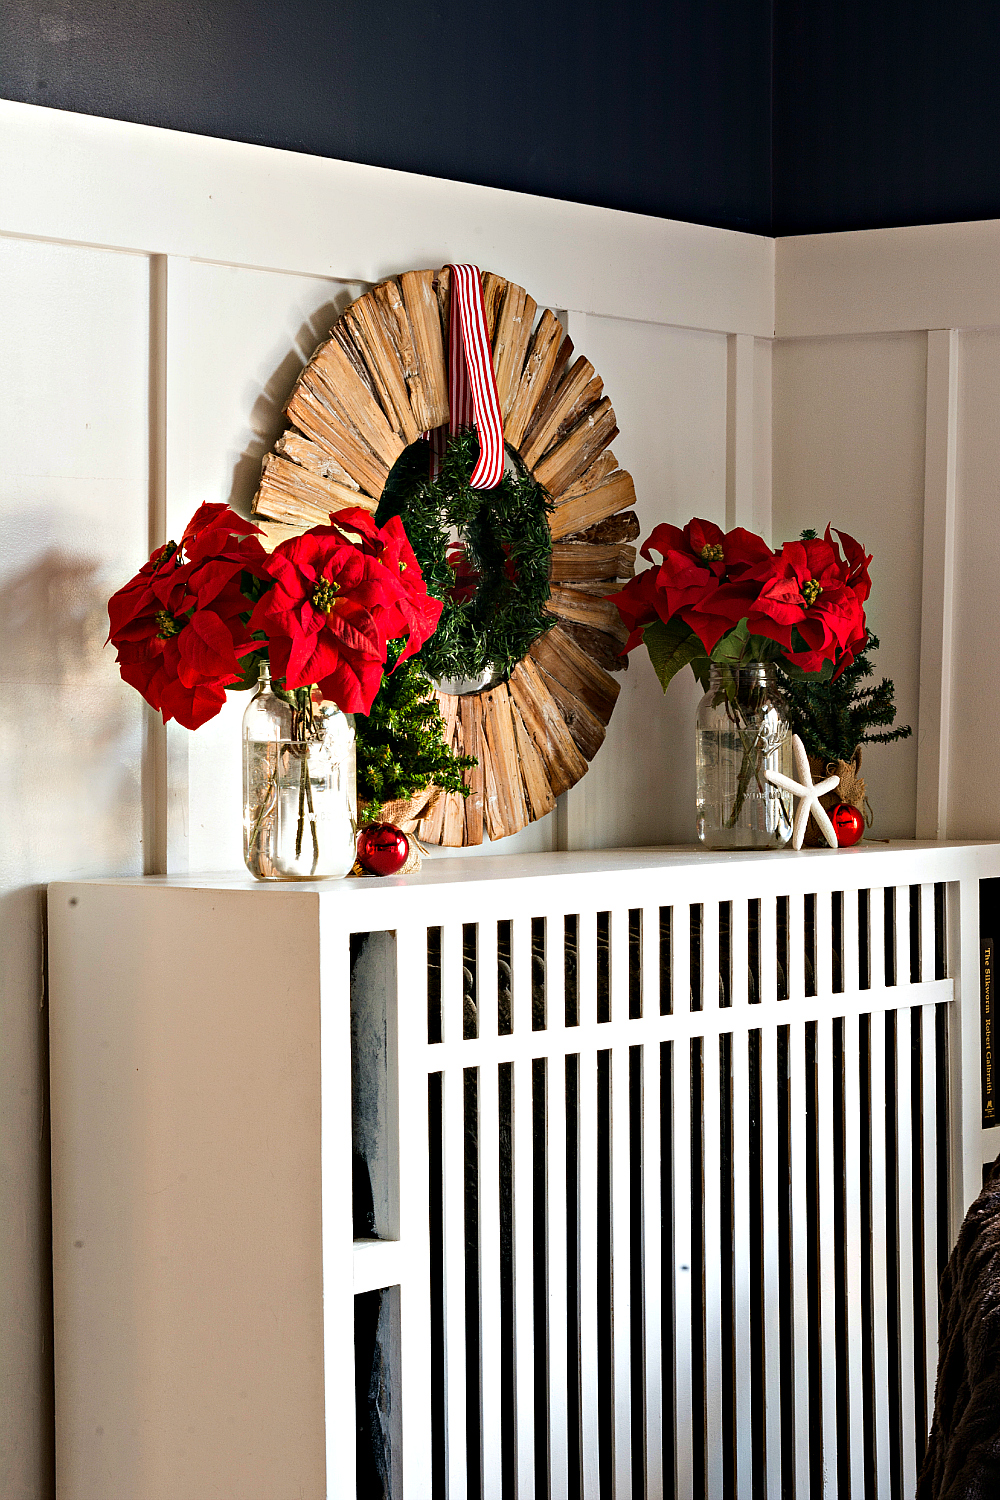 Christmas-Red-White-Decorating-Ideas (19 of 47) 1